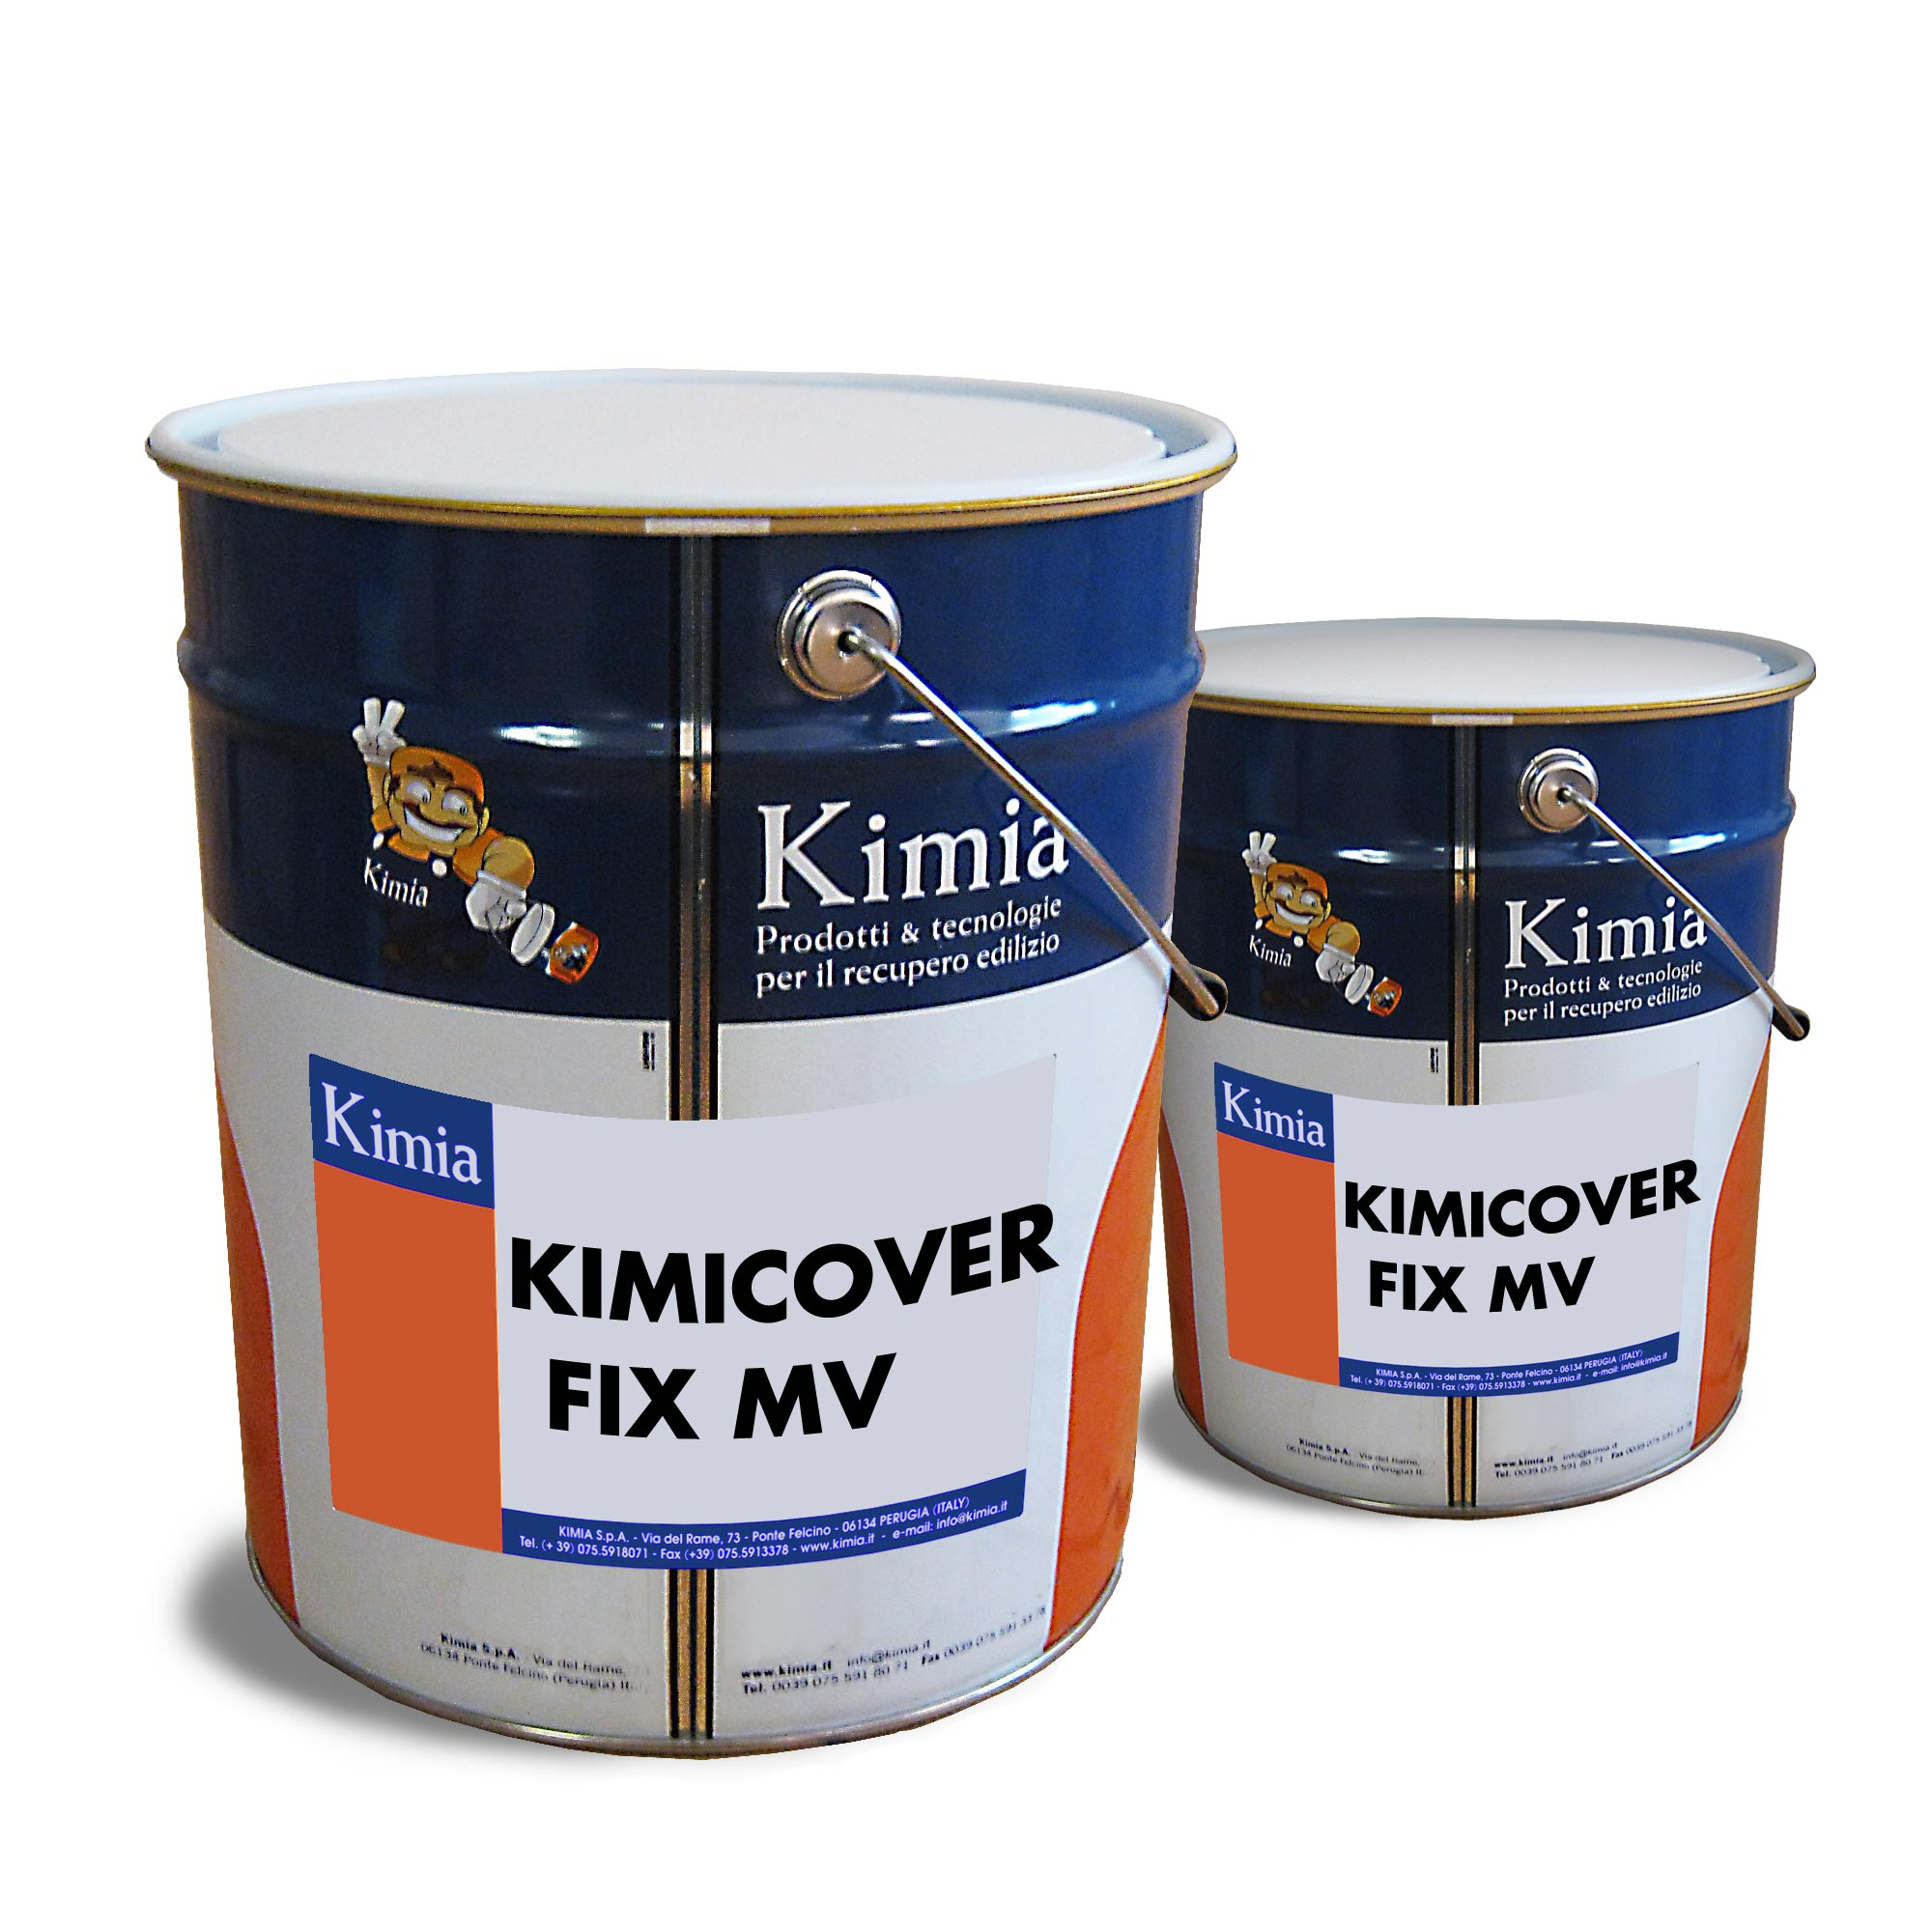 Kimicover FIX MV